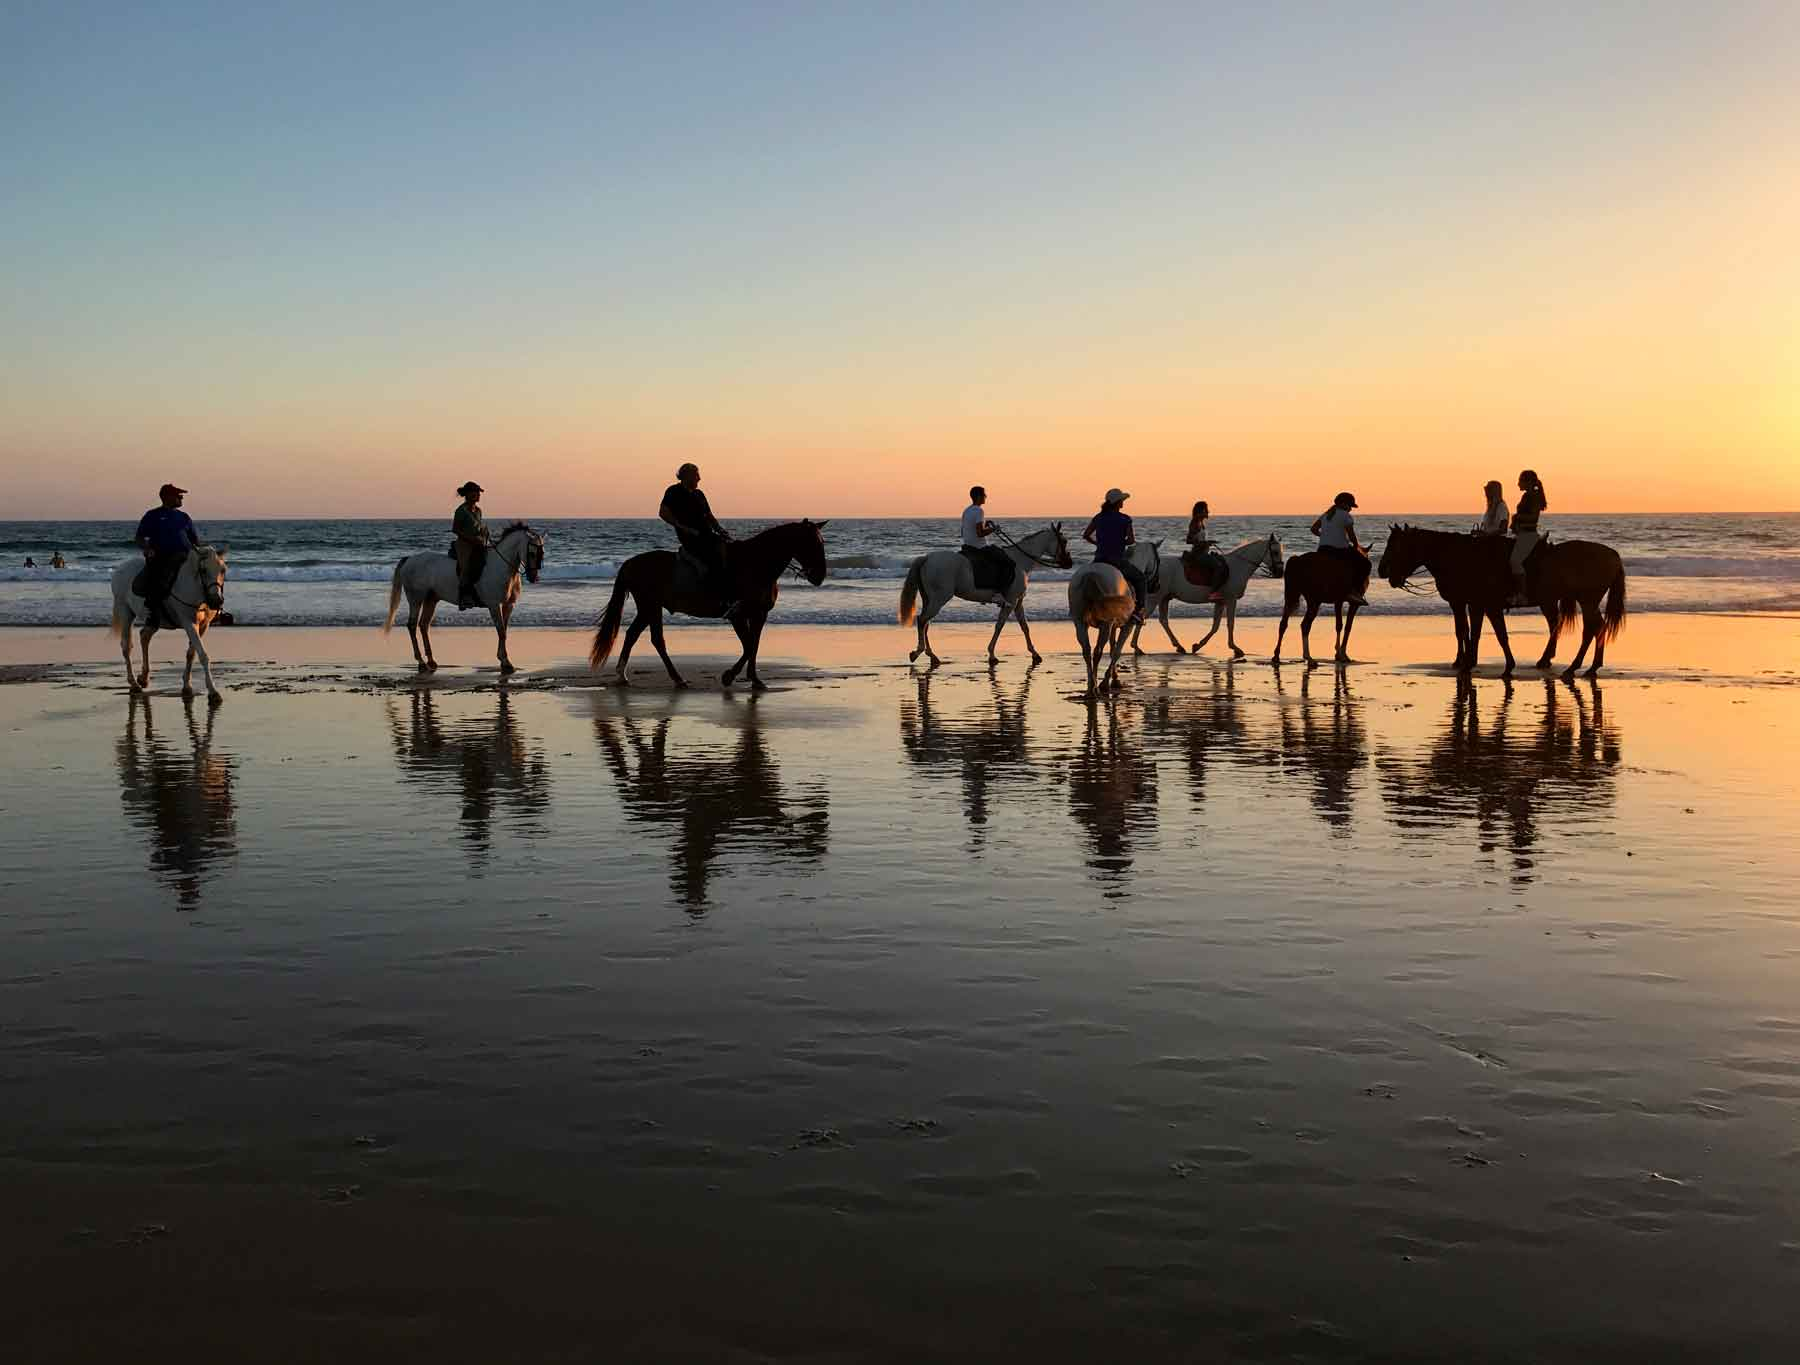 Yup, you can rent a horse to ride the beach at sunset... your own private Danielle Steel novel cover.